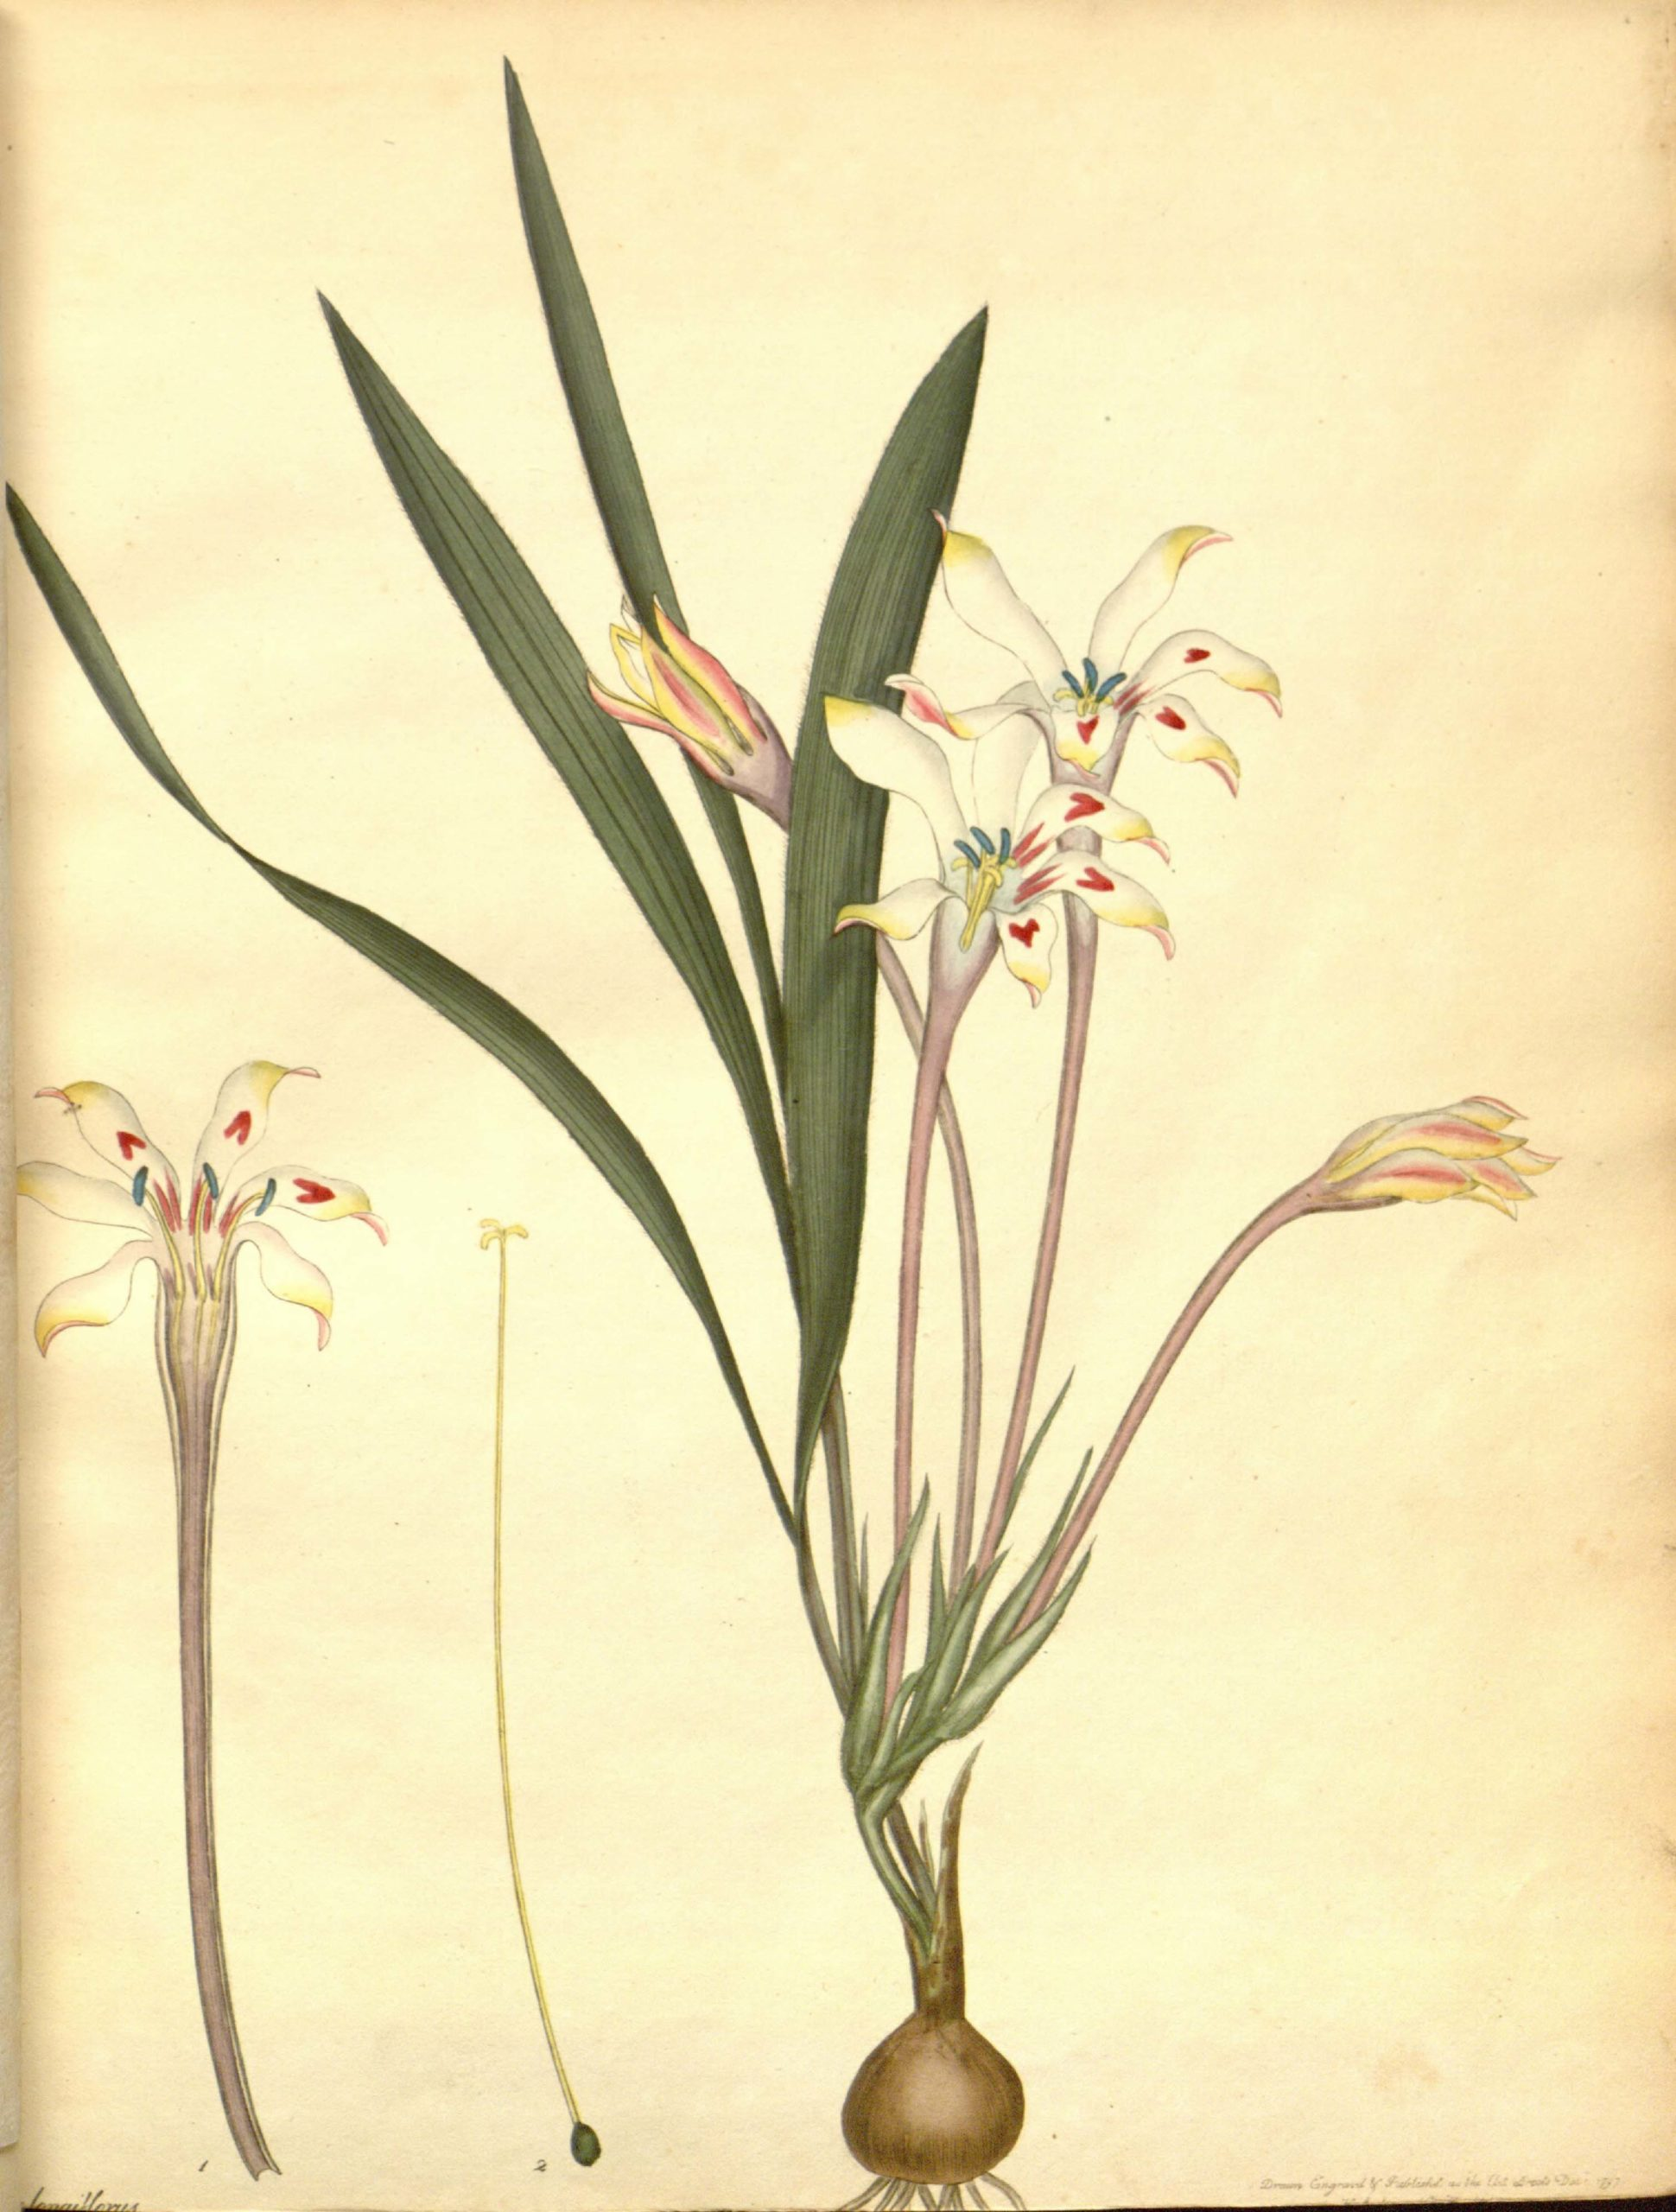 Vintage Botanical Prints - 43 in a series - Gladiolus Longflorus from The Botanist's Repository (1797)